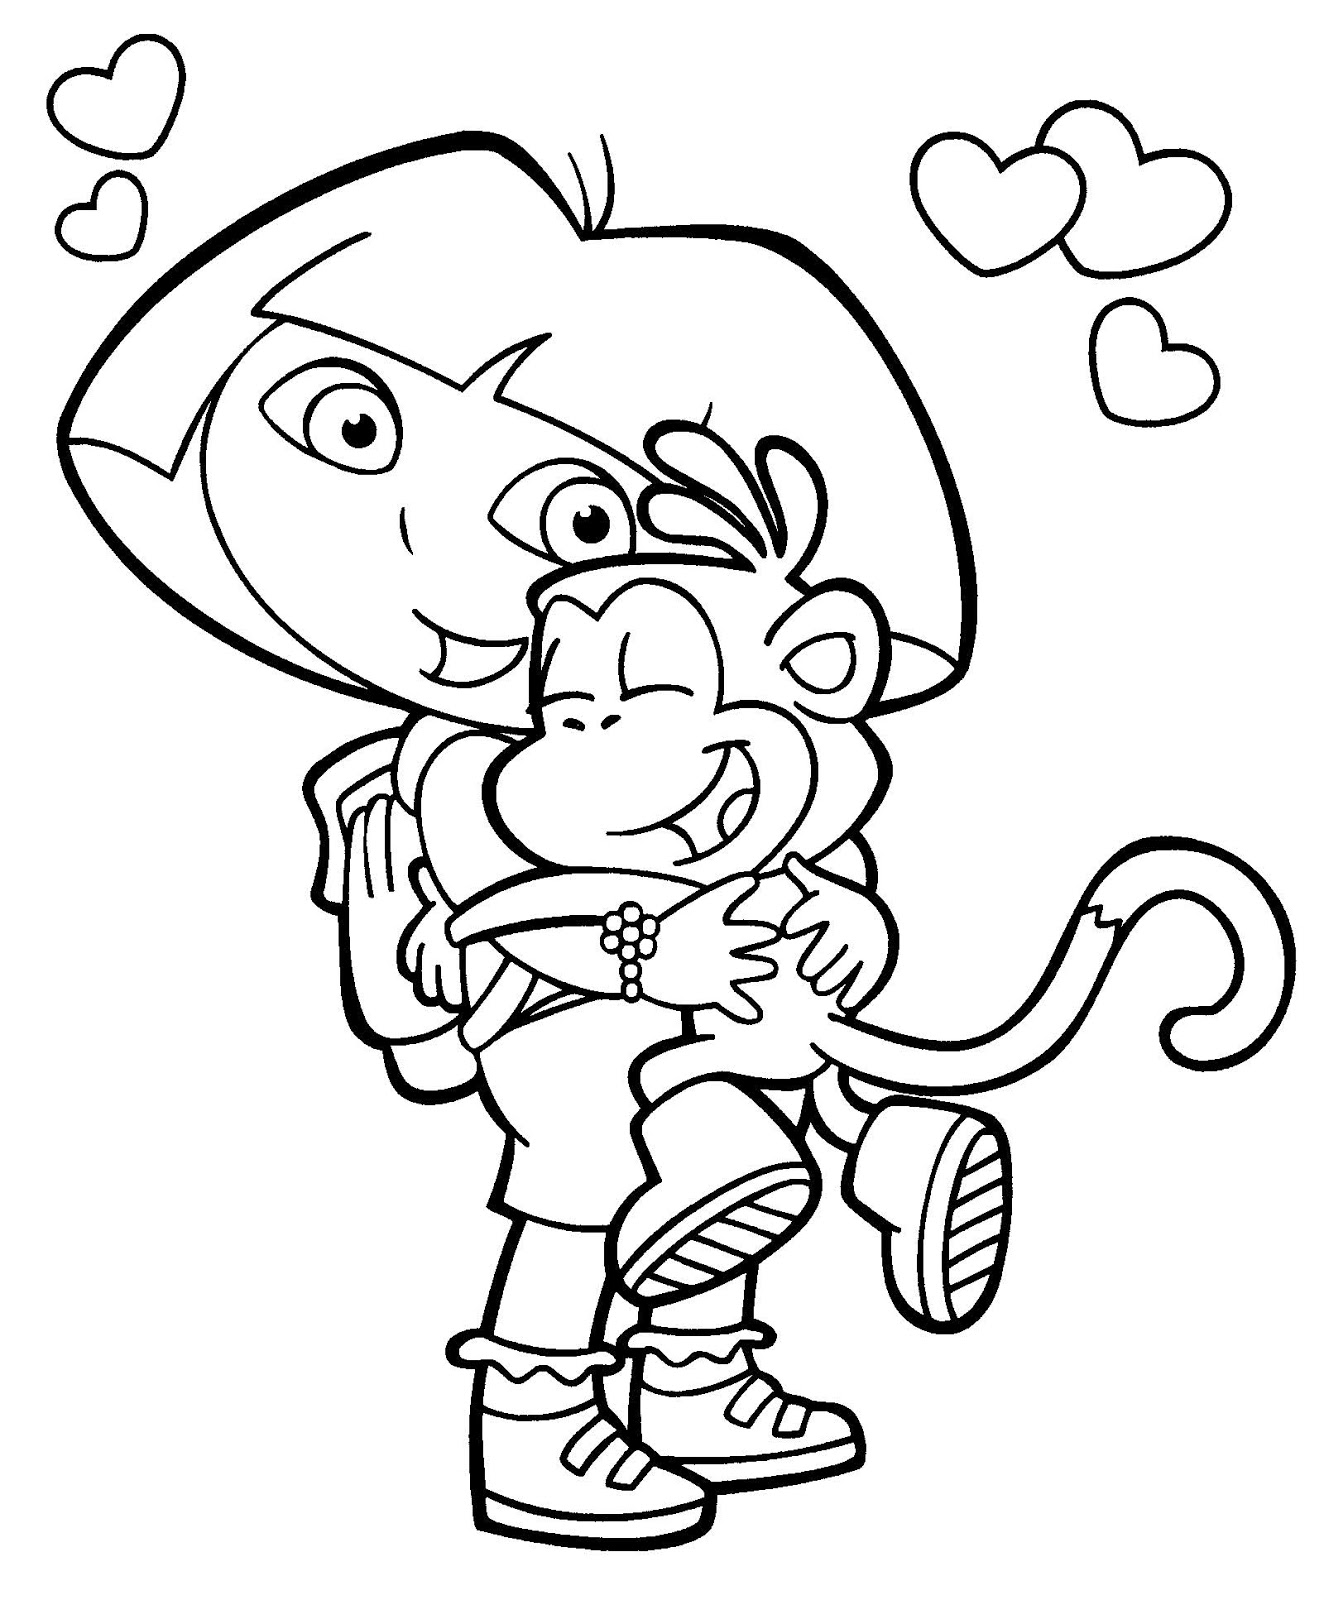 Coloring pages dora sheets for kids photos of and friends computer hd get